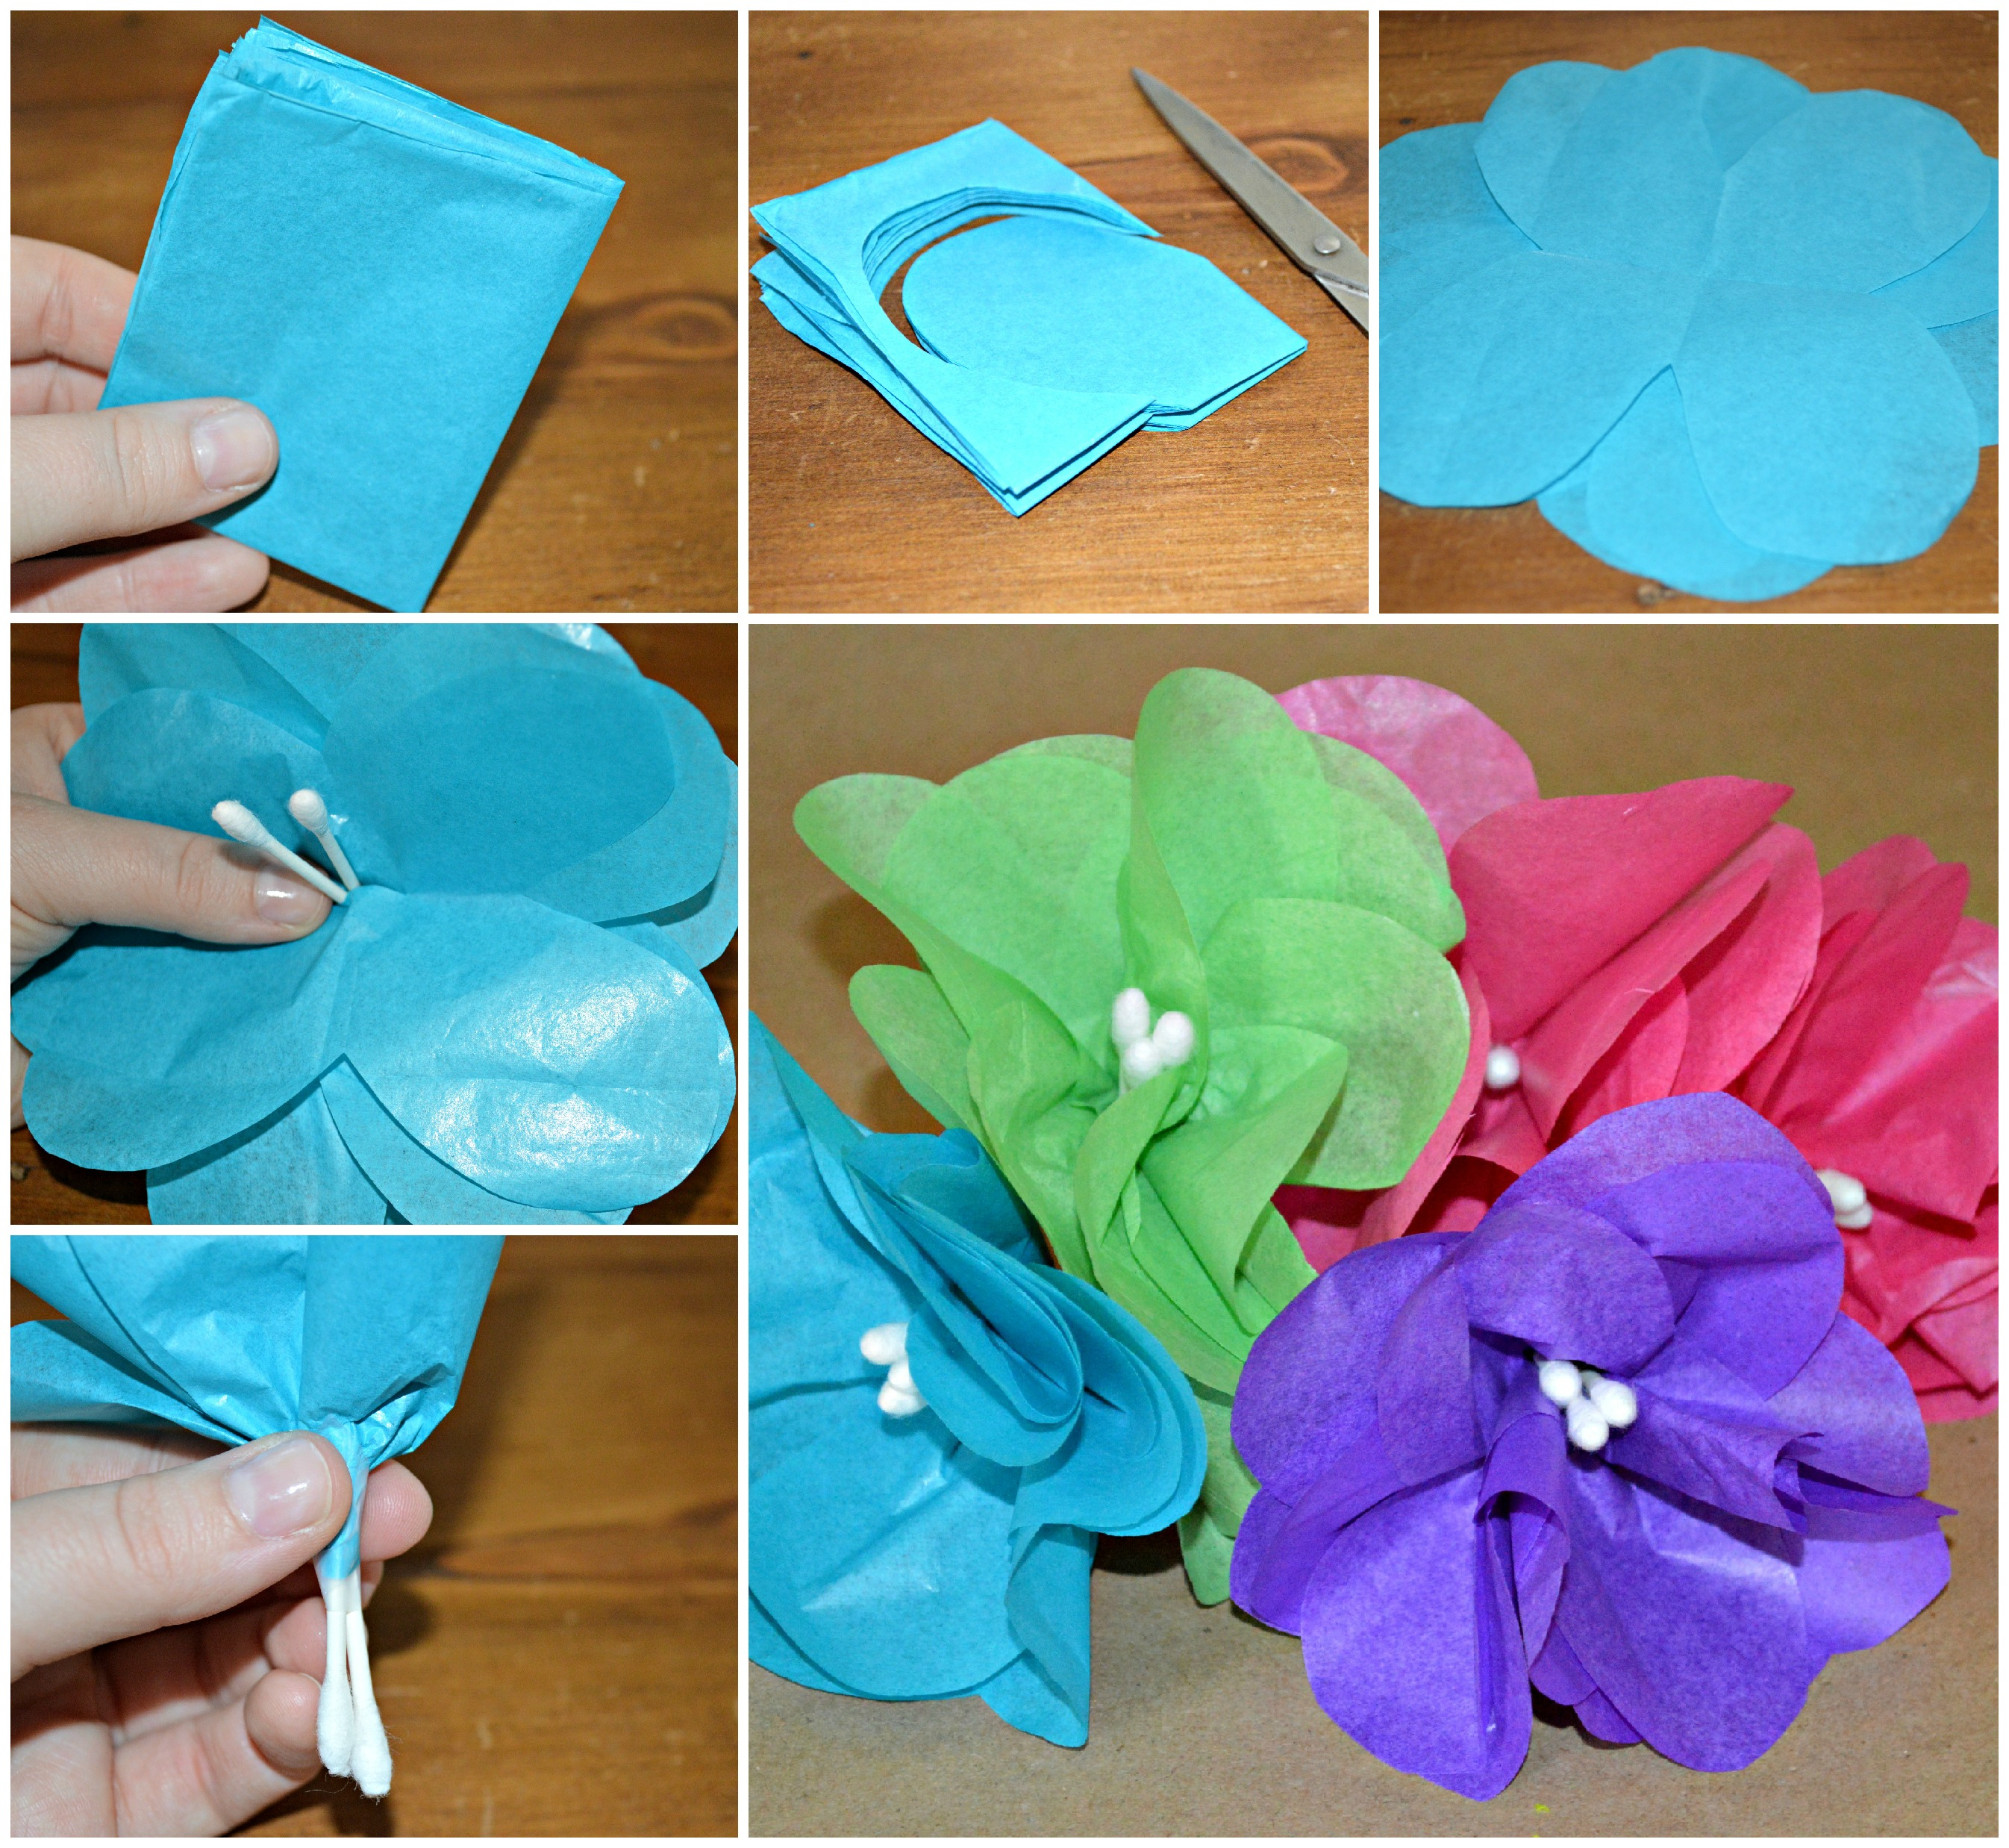 How to make hanging tissue paper flower flowers healthy diy shower decor hanging globes lanterns tissue paper flowers 2692x2476 mightylinksfo